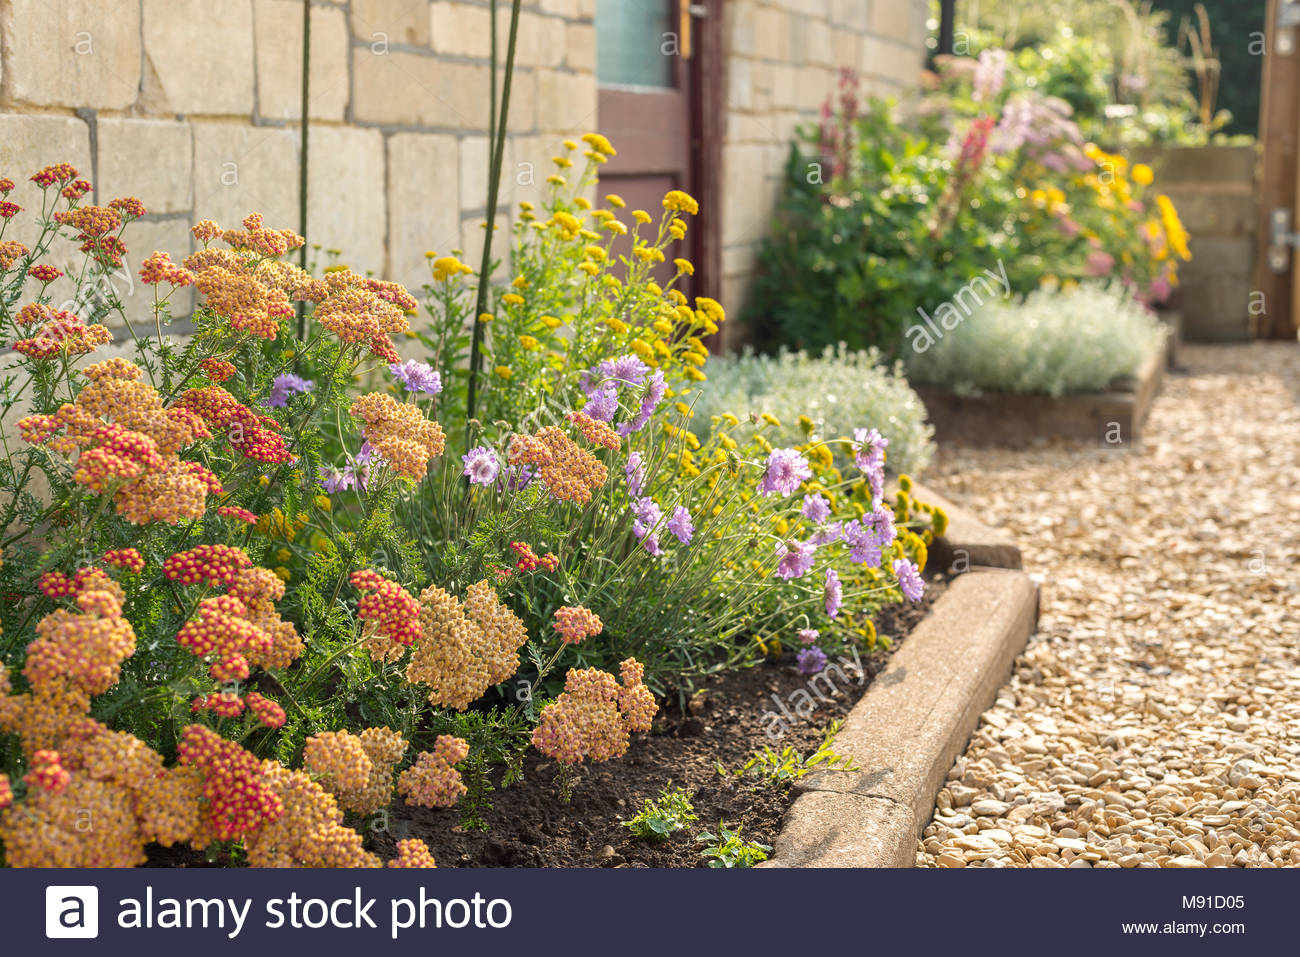 A Flower Border By The Side Of A Gravel Drive, In Front Of A House